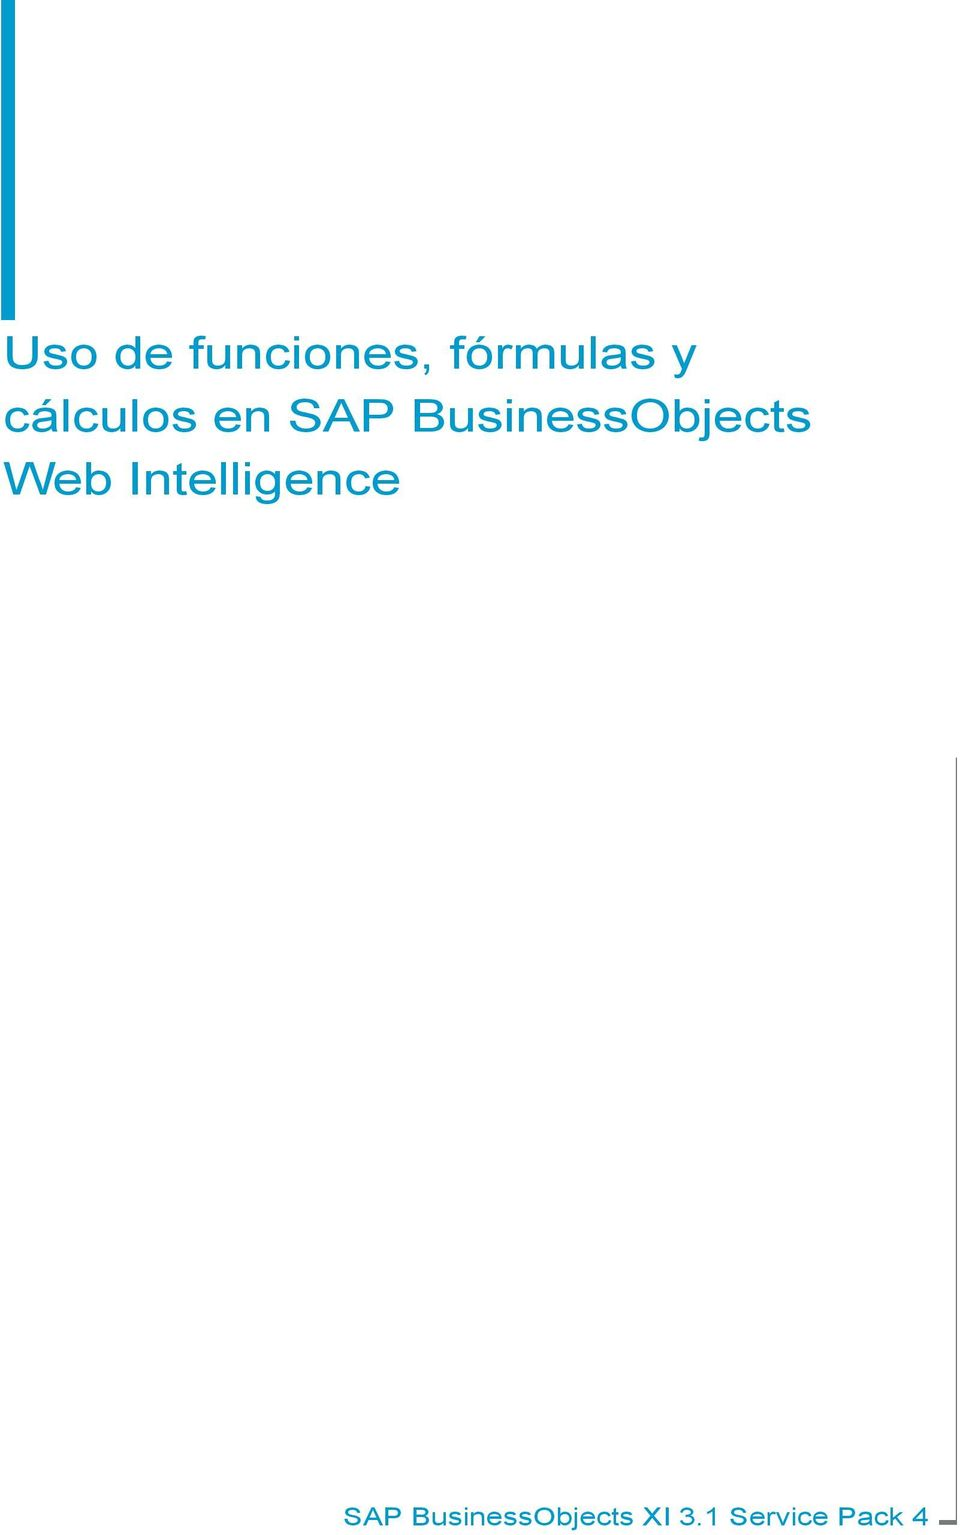 sap business objects documentation pdf